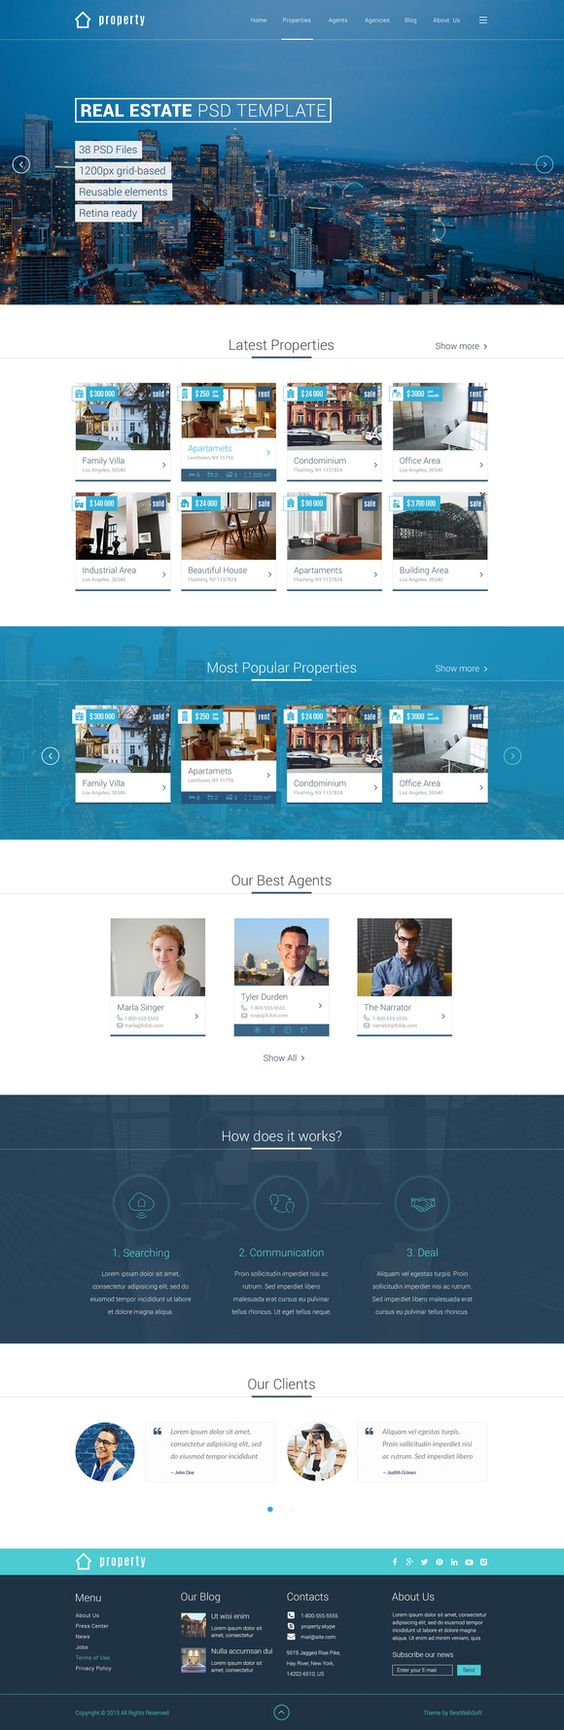 Property - Real Estate PSD Template by bestwebsoft on Creative Market